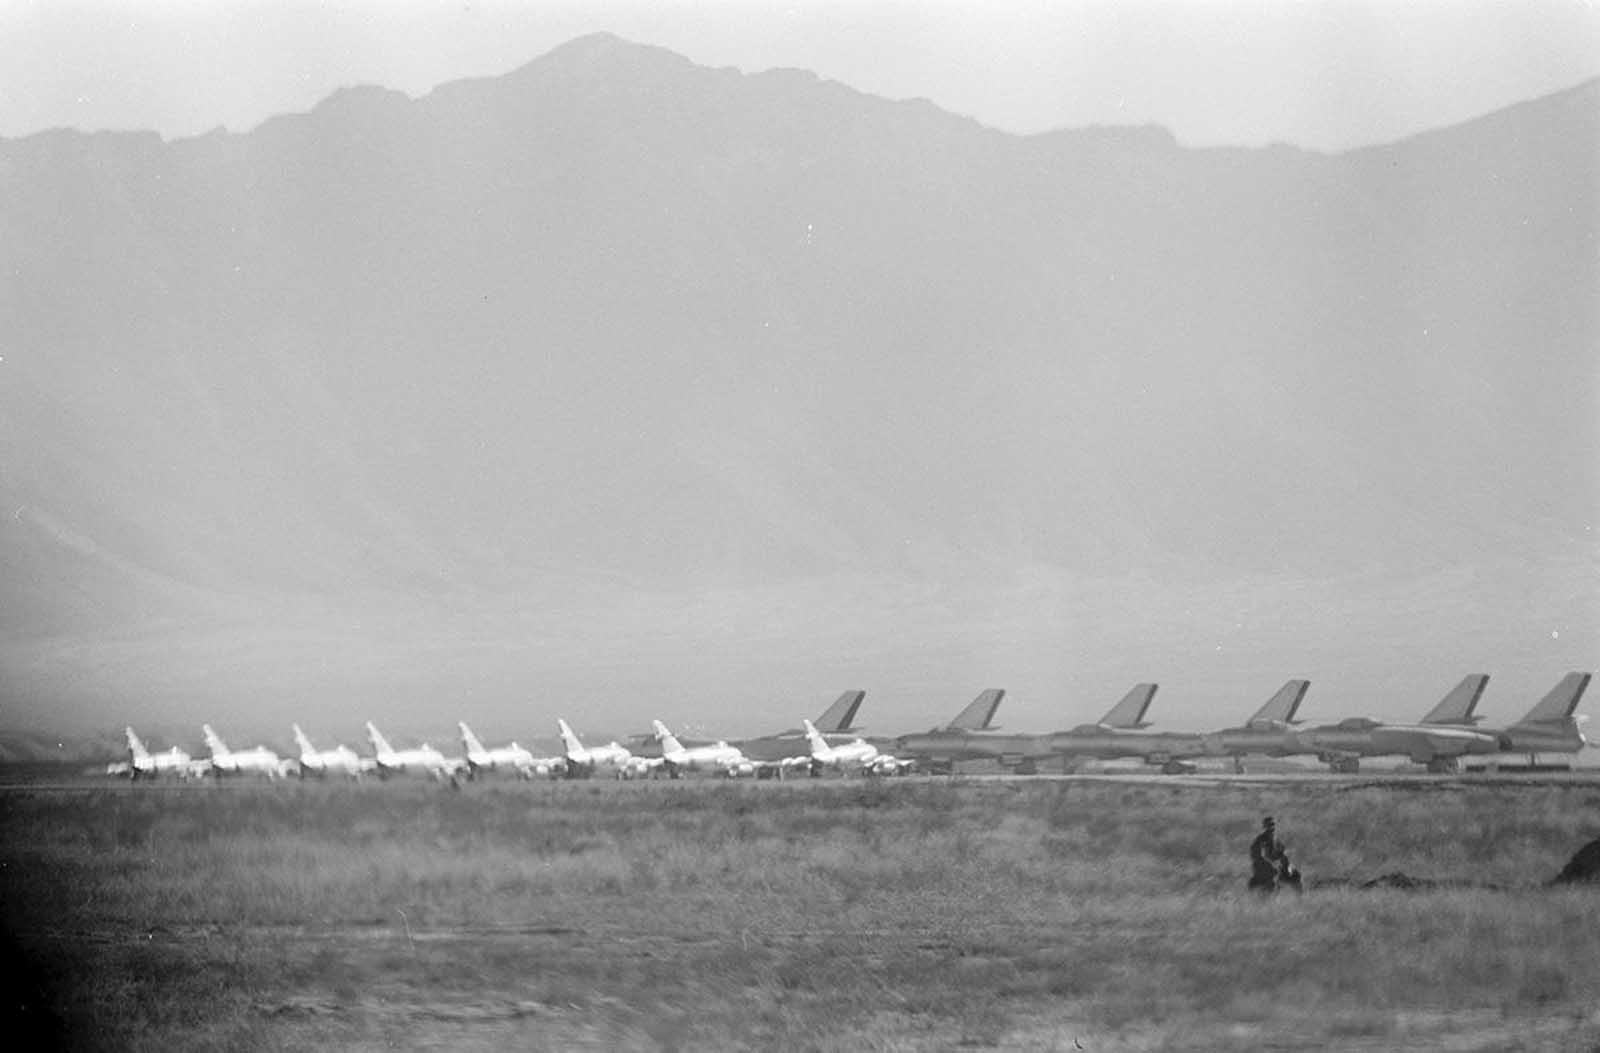 Afghan Air Force Mikoyan-Gurevich MiG-15 fighters and Ilyushin Il-28 bombers in Kabul, Afghanistan, during the visit of the U.S. president Dwight D. Eisenhower, in December of 1959.